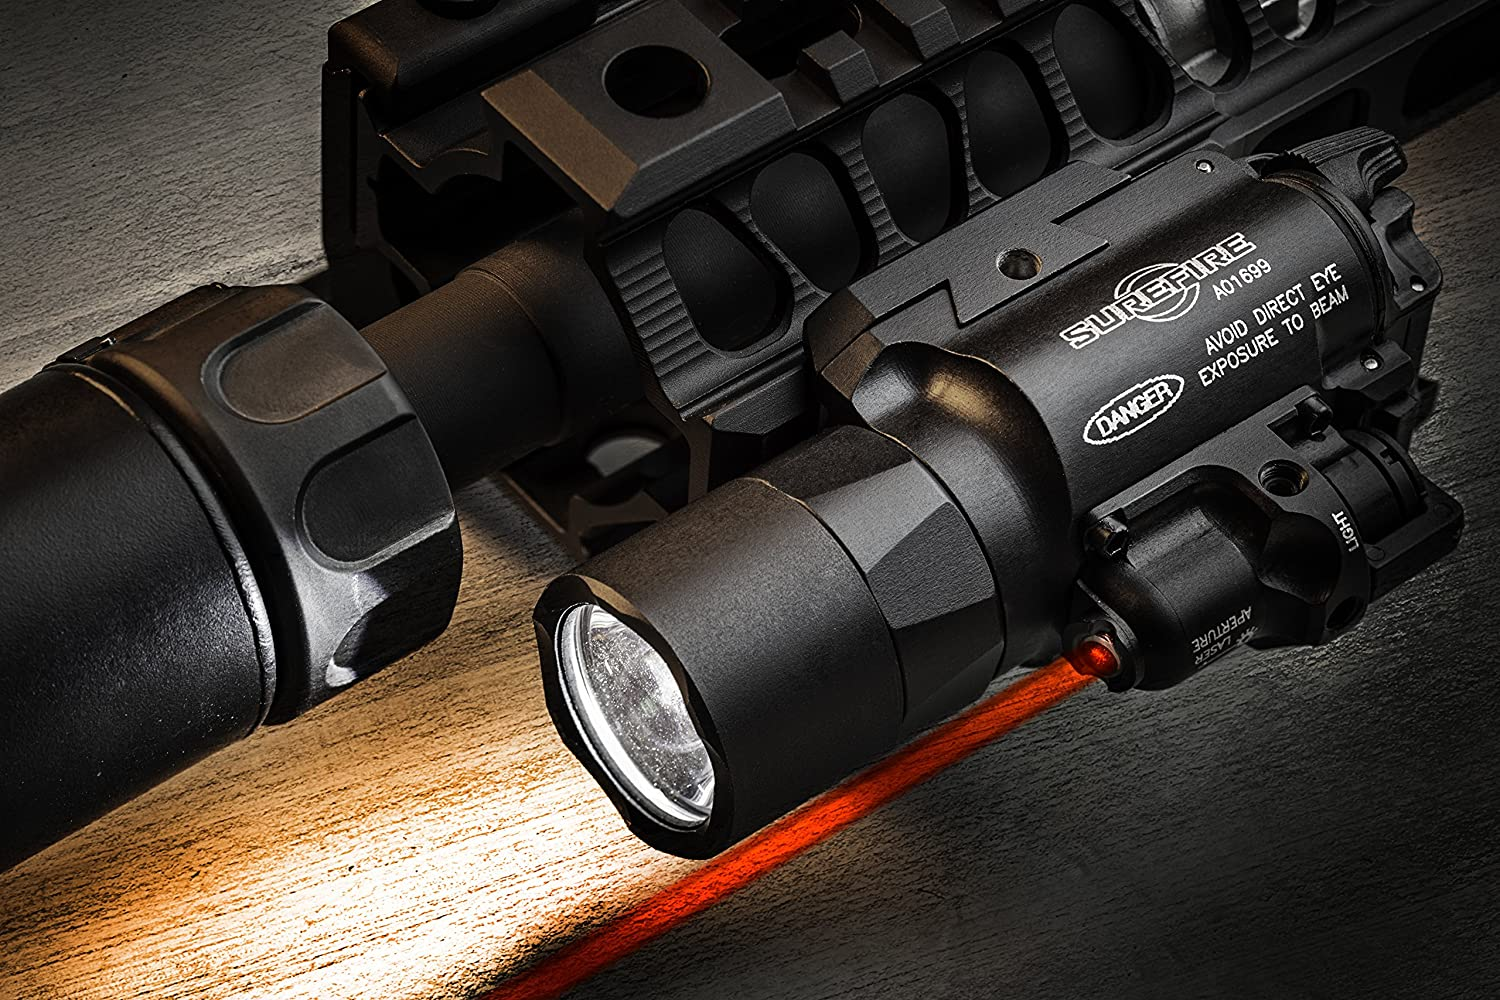 This is an image of a laser light with red beam attached on top of a pistol.